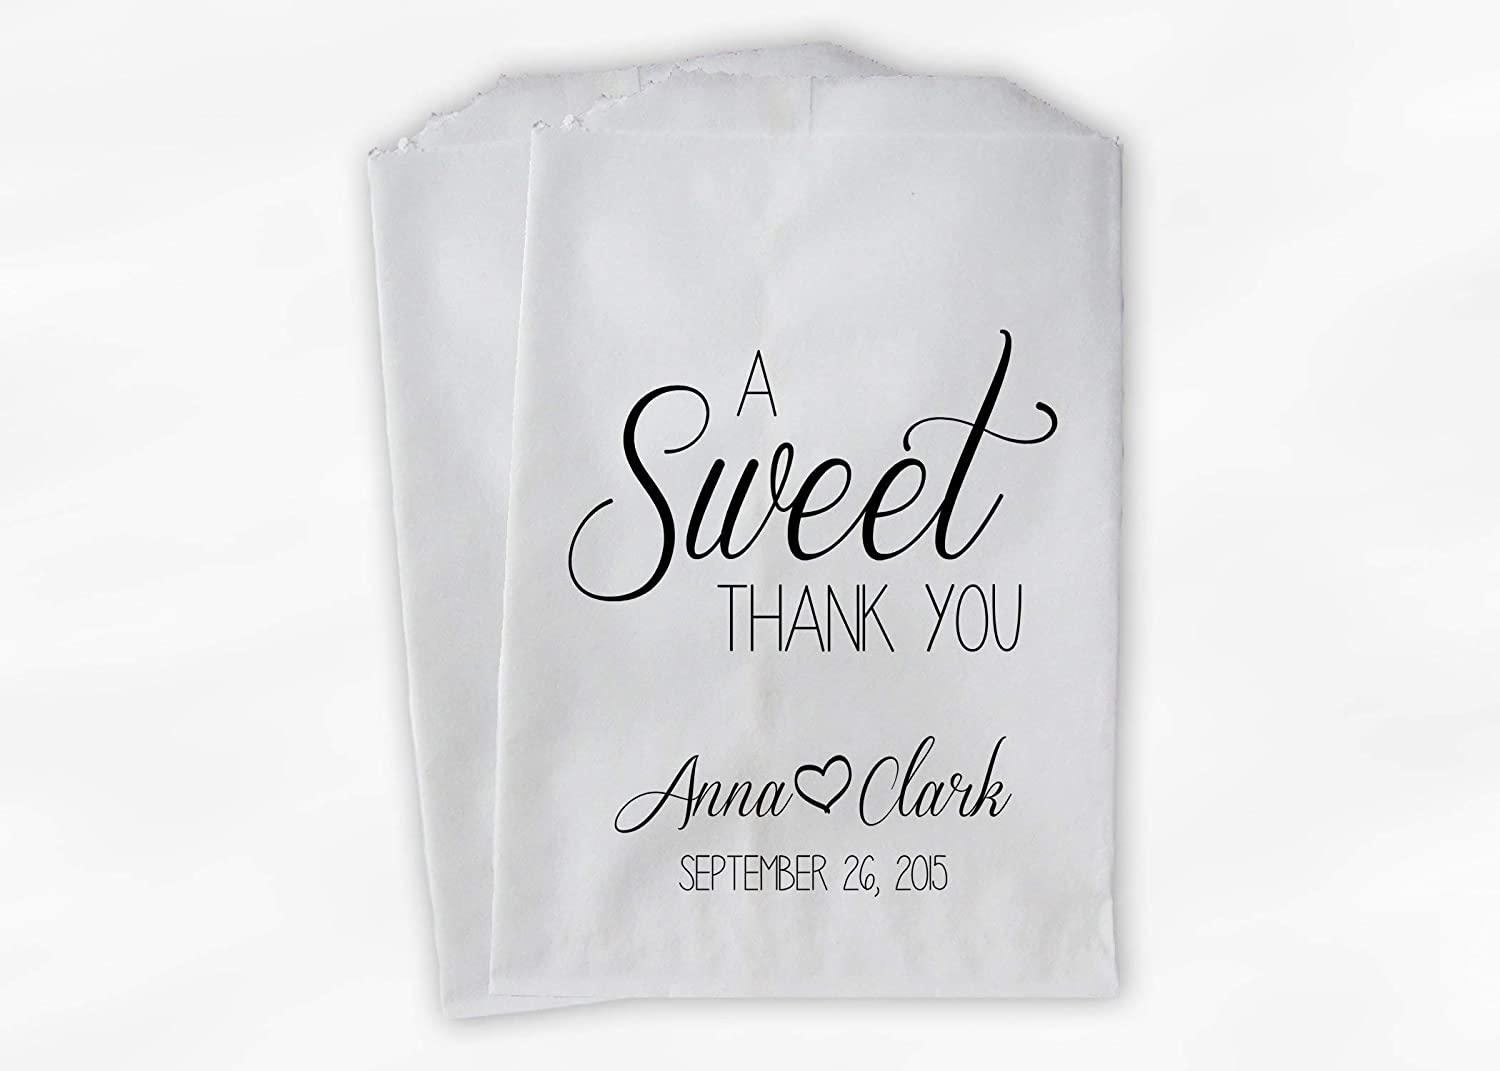 Marvelous A Sweet Thank You Wedding Favor Bags For Candy Buffet In Black And White Personalized Set Of 25 Paper Bags 0153 Download Free Architecture Designs Jebrpmadebymaigaardcom